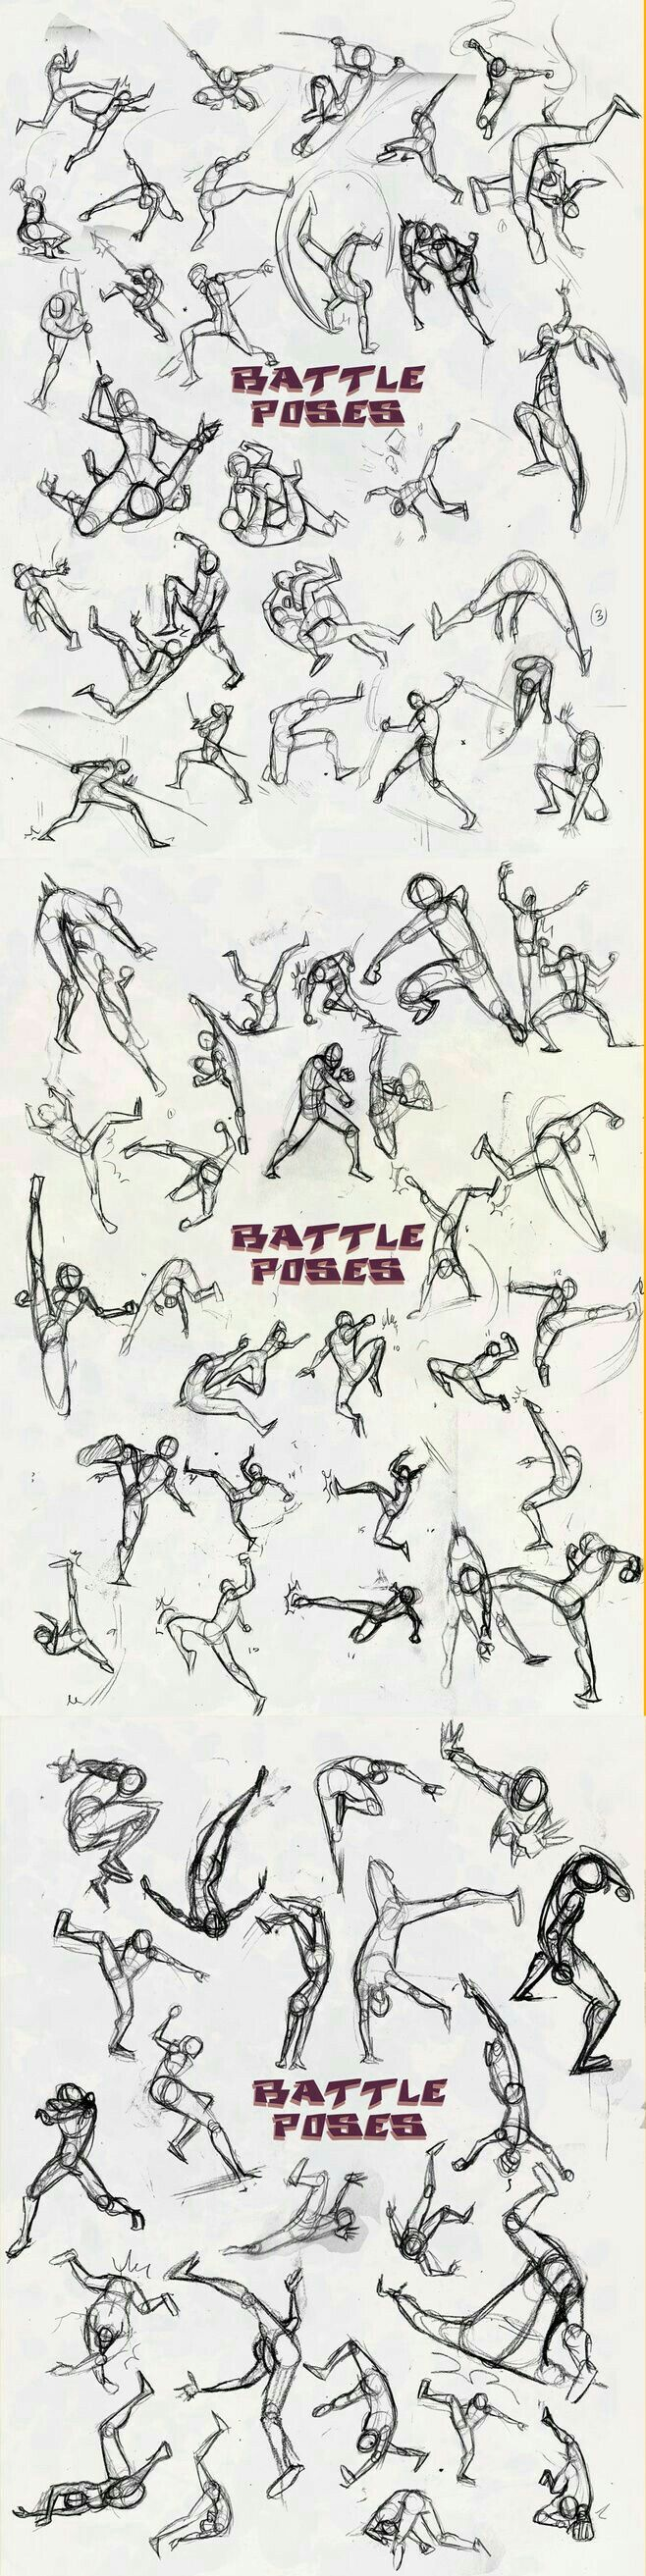 Battle Poses, text, positions; How to Draw Manga/Anime